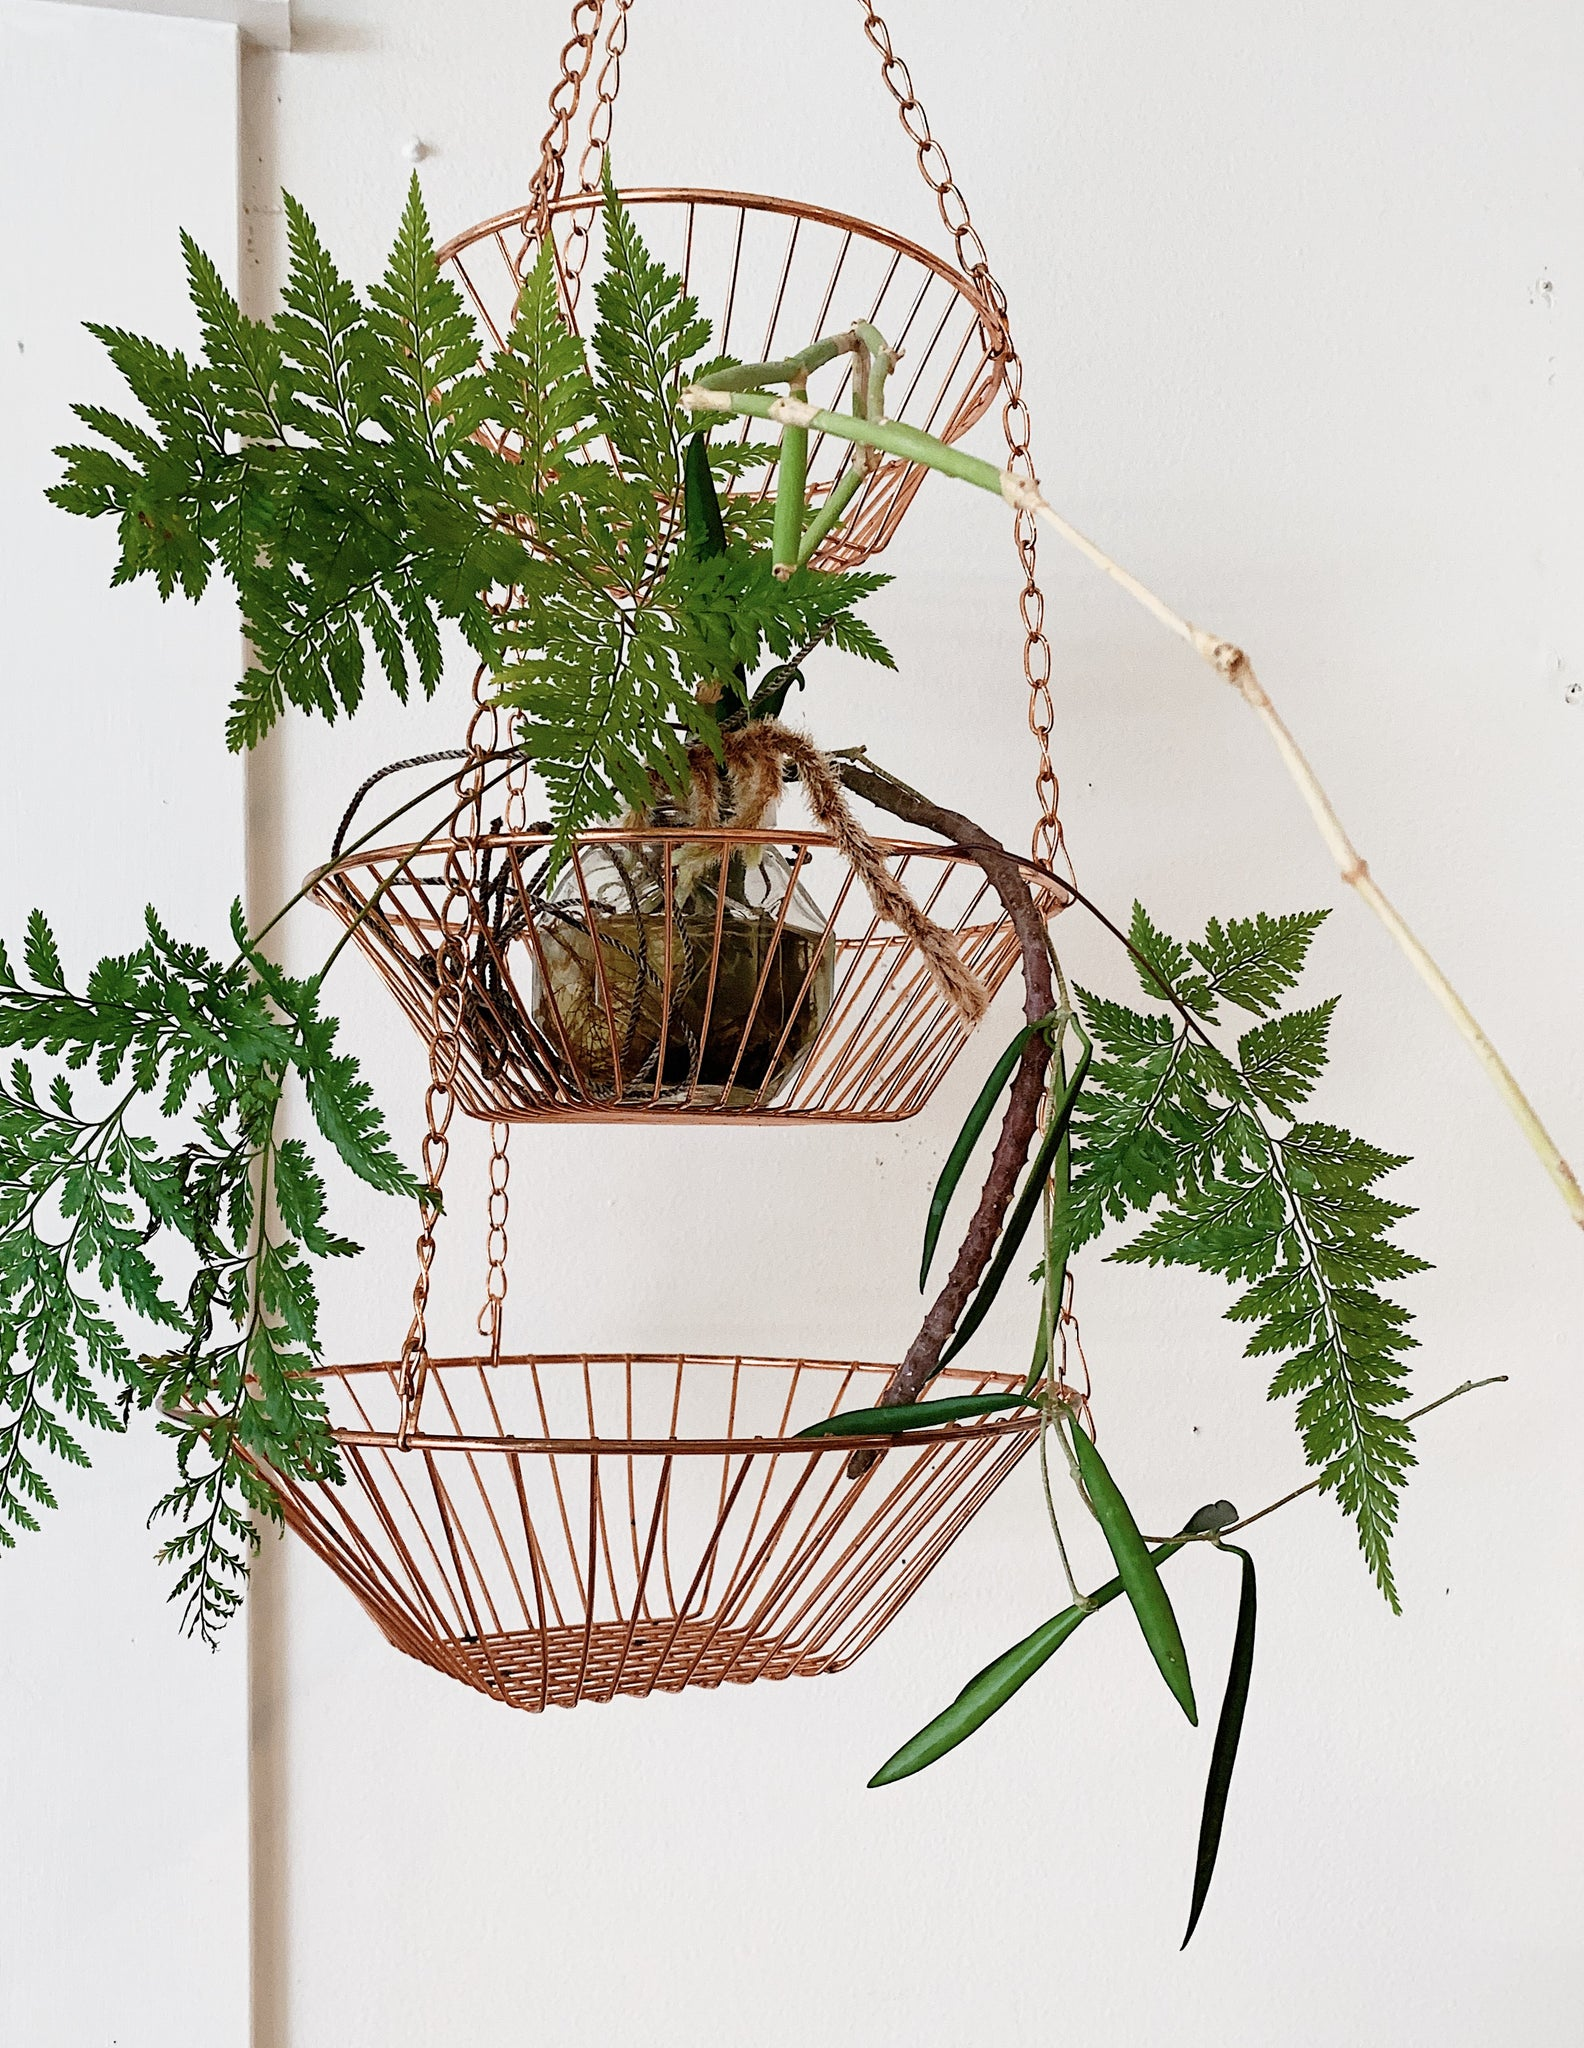 Triple Hanging Copper Baskets